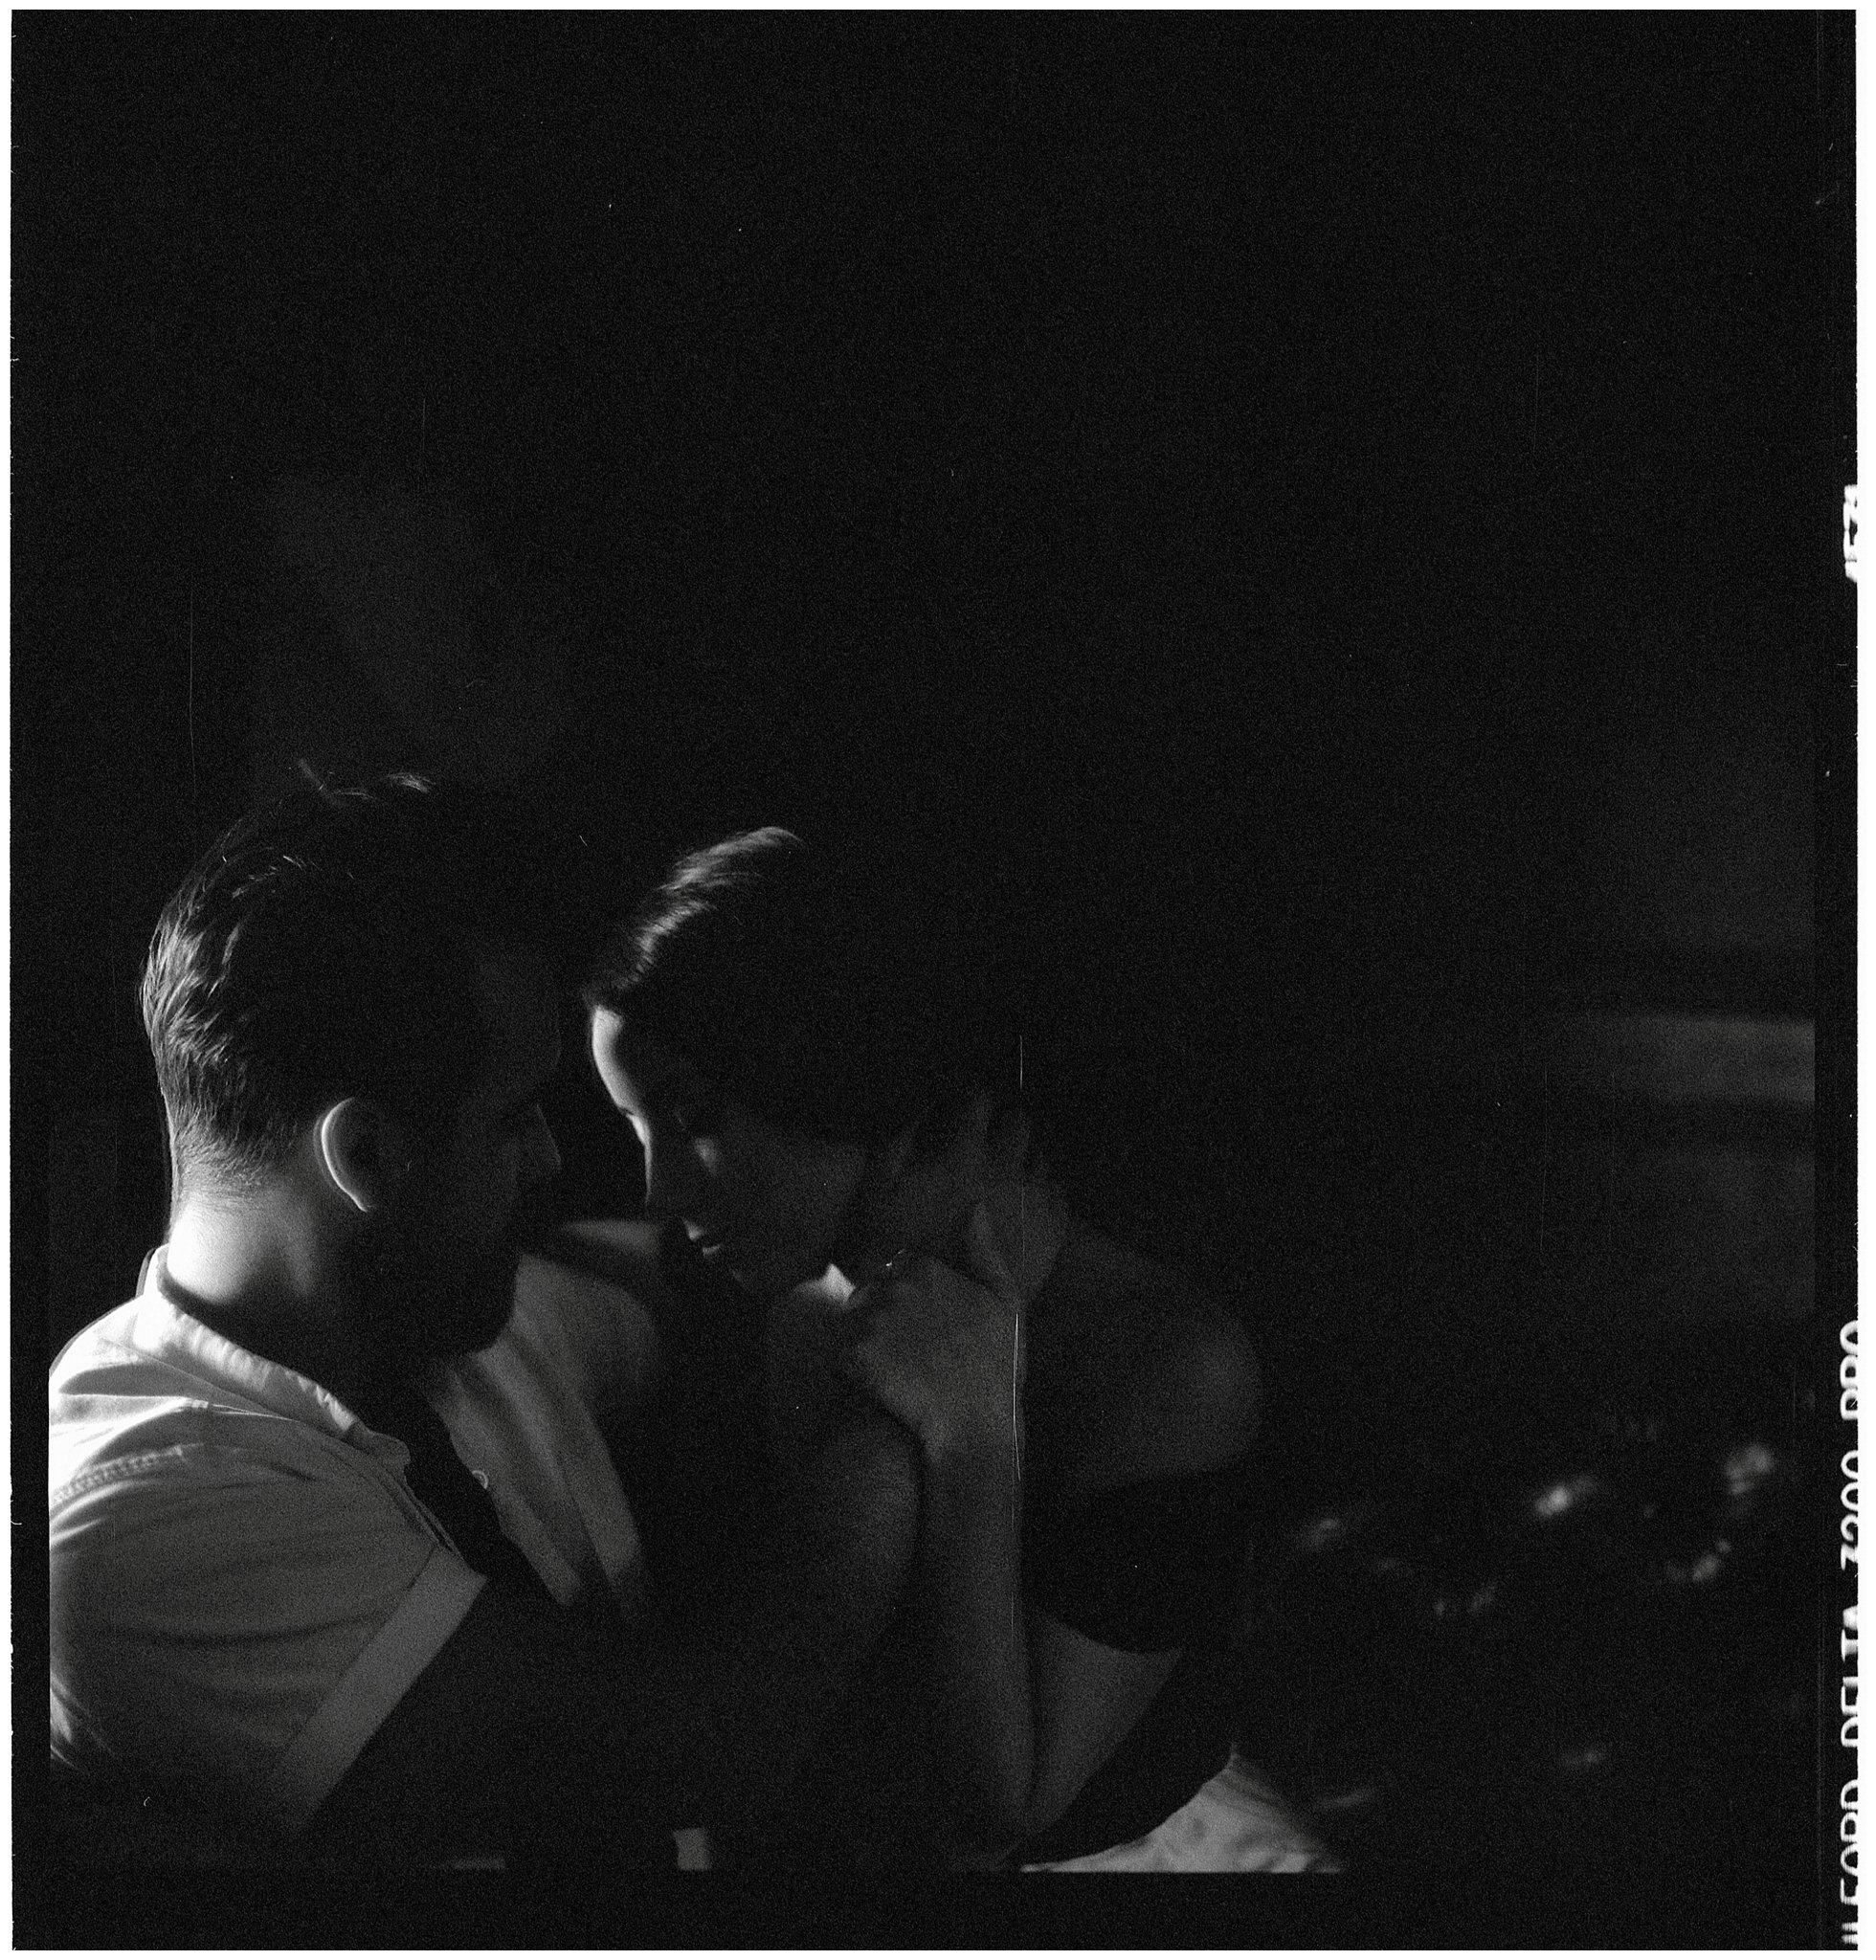 two people kissing film analog photography black and white ilford delta 3200